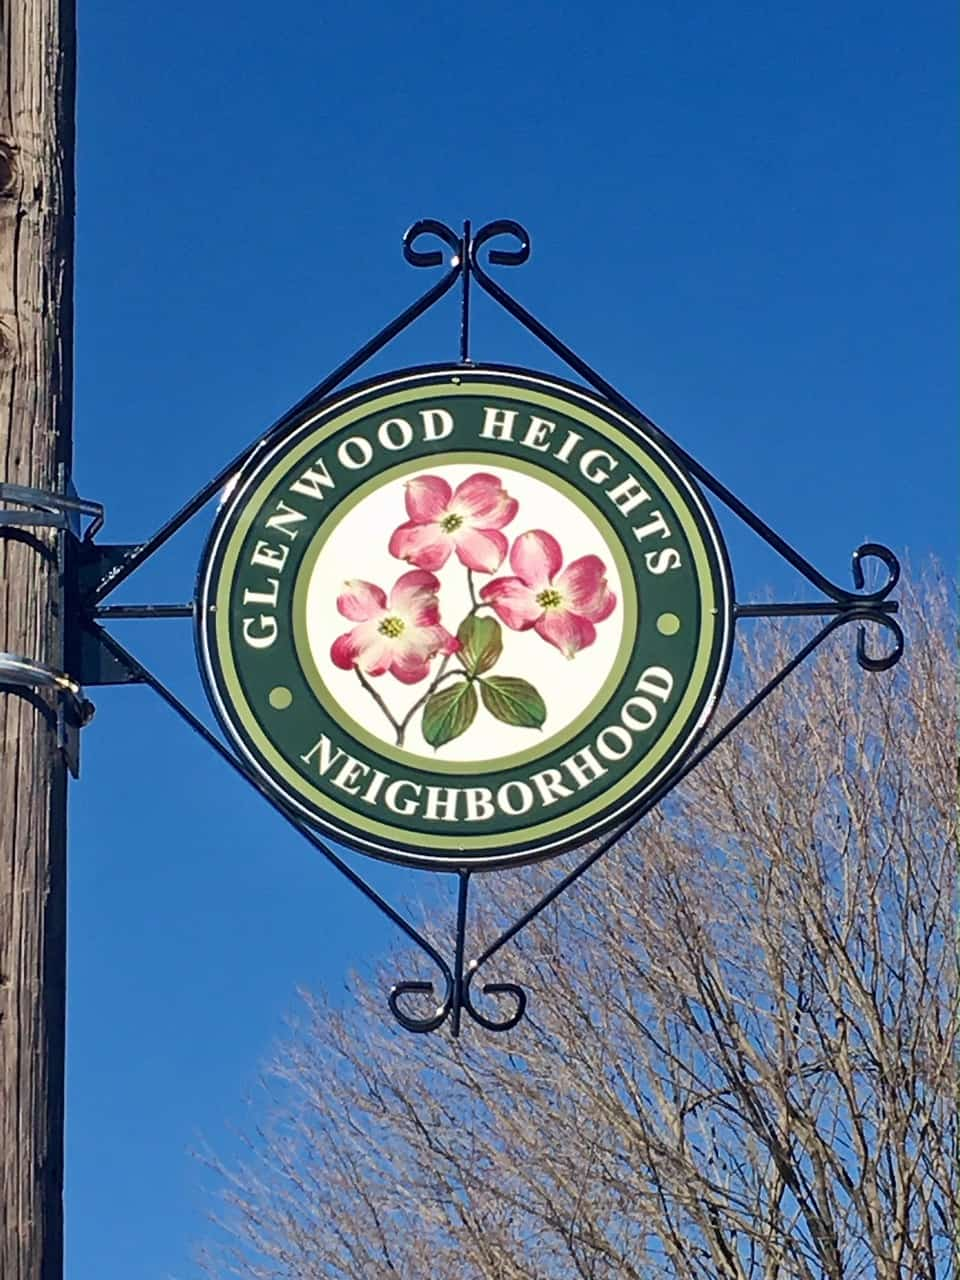 Glenwood Heights neighborhood sign